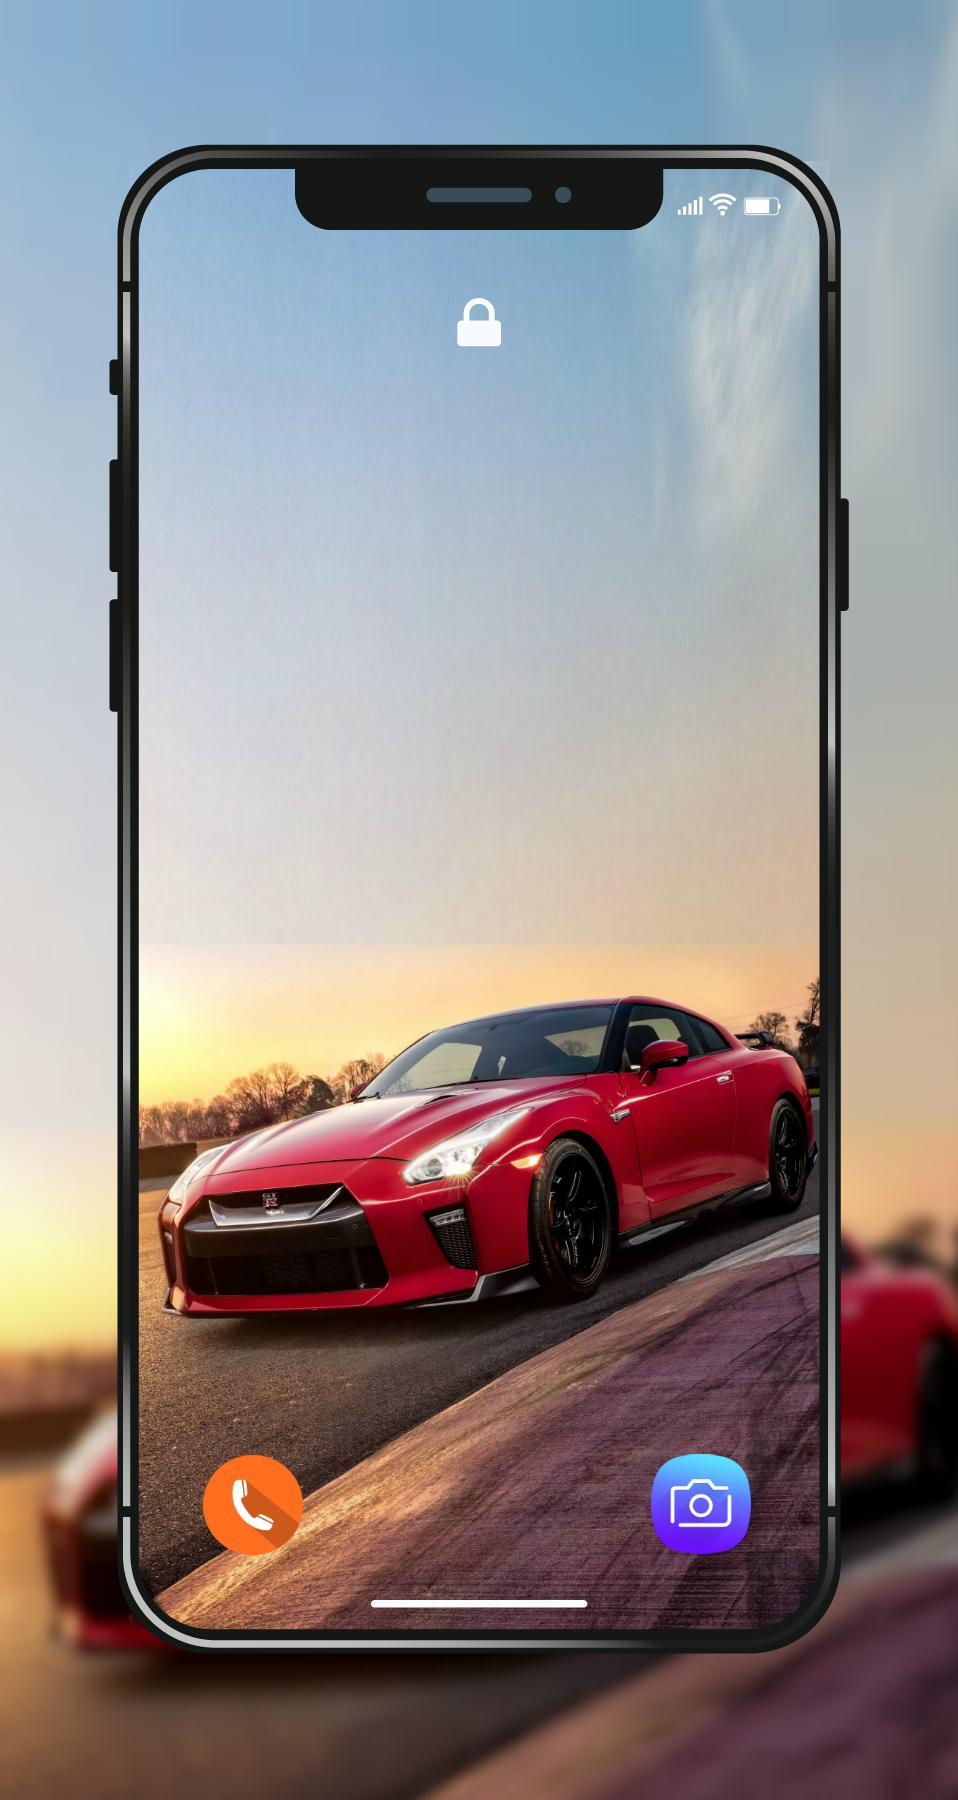 Wallpapers Of Nissan Gtr Hd 4k Gtr Pics For Android